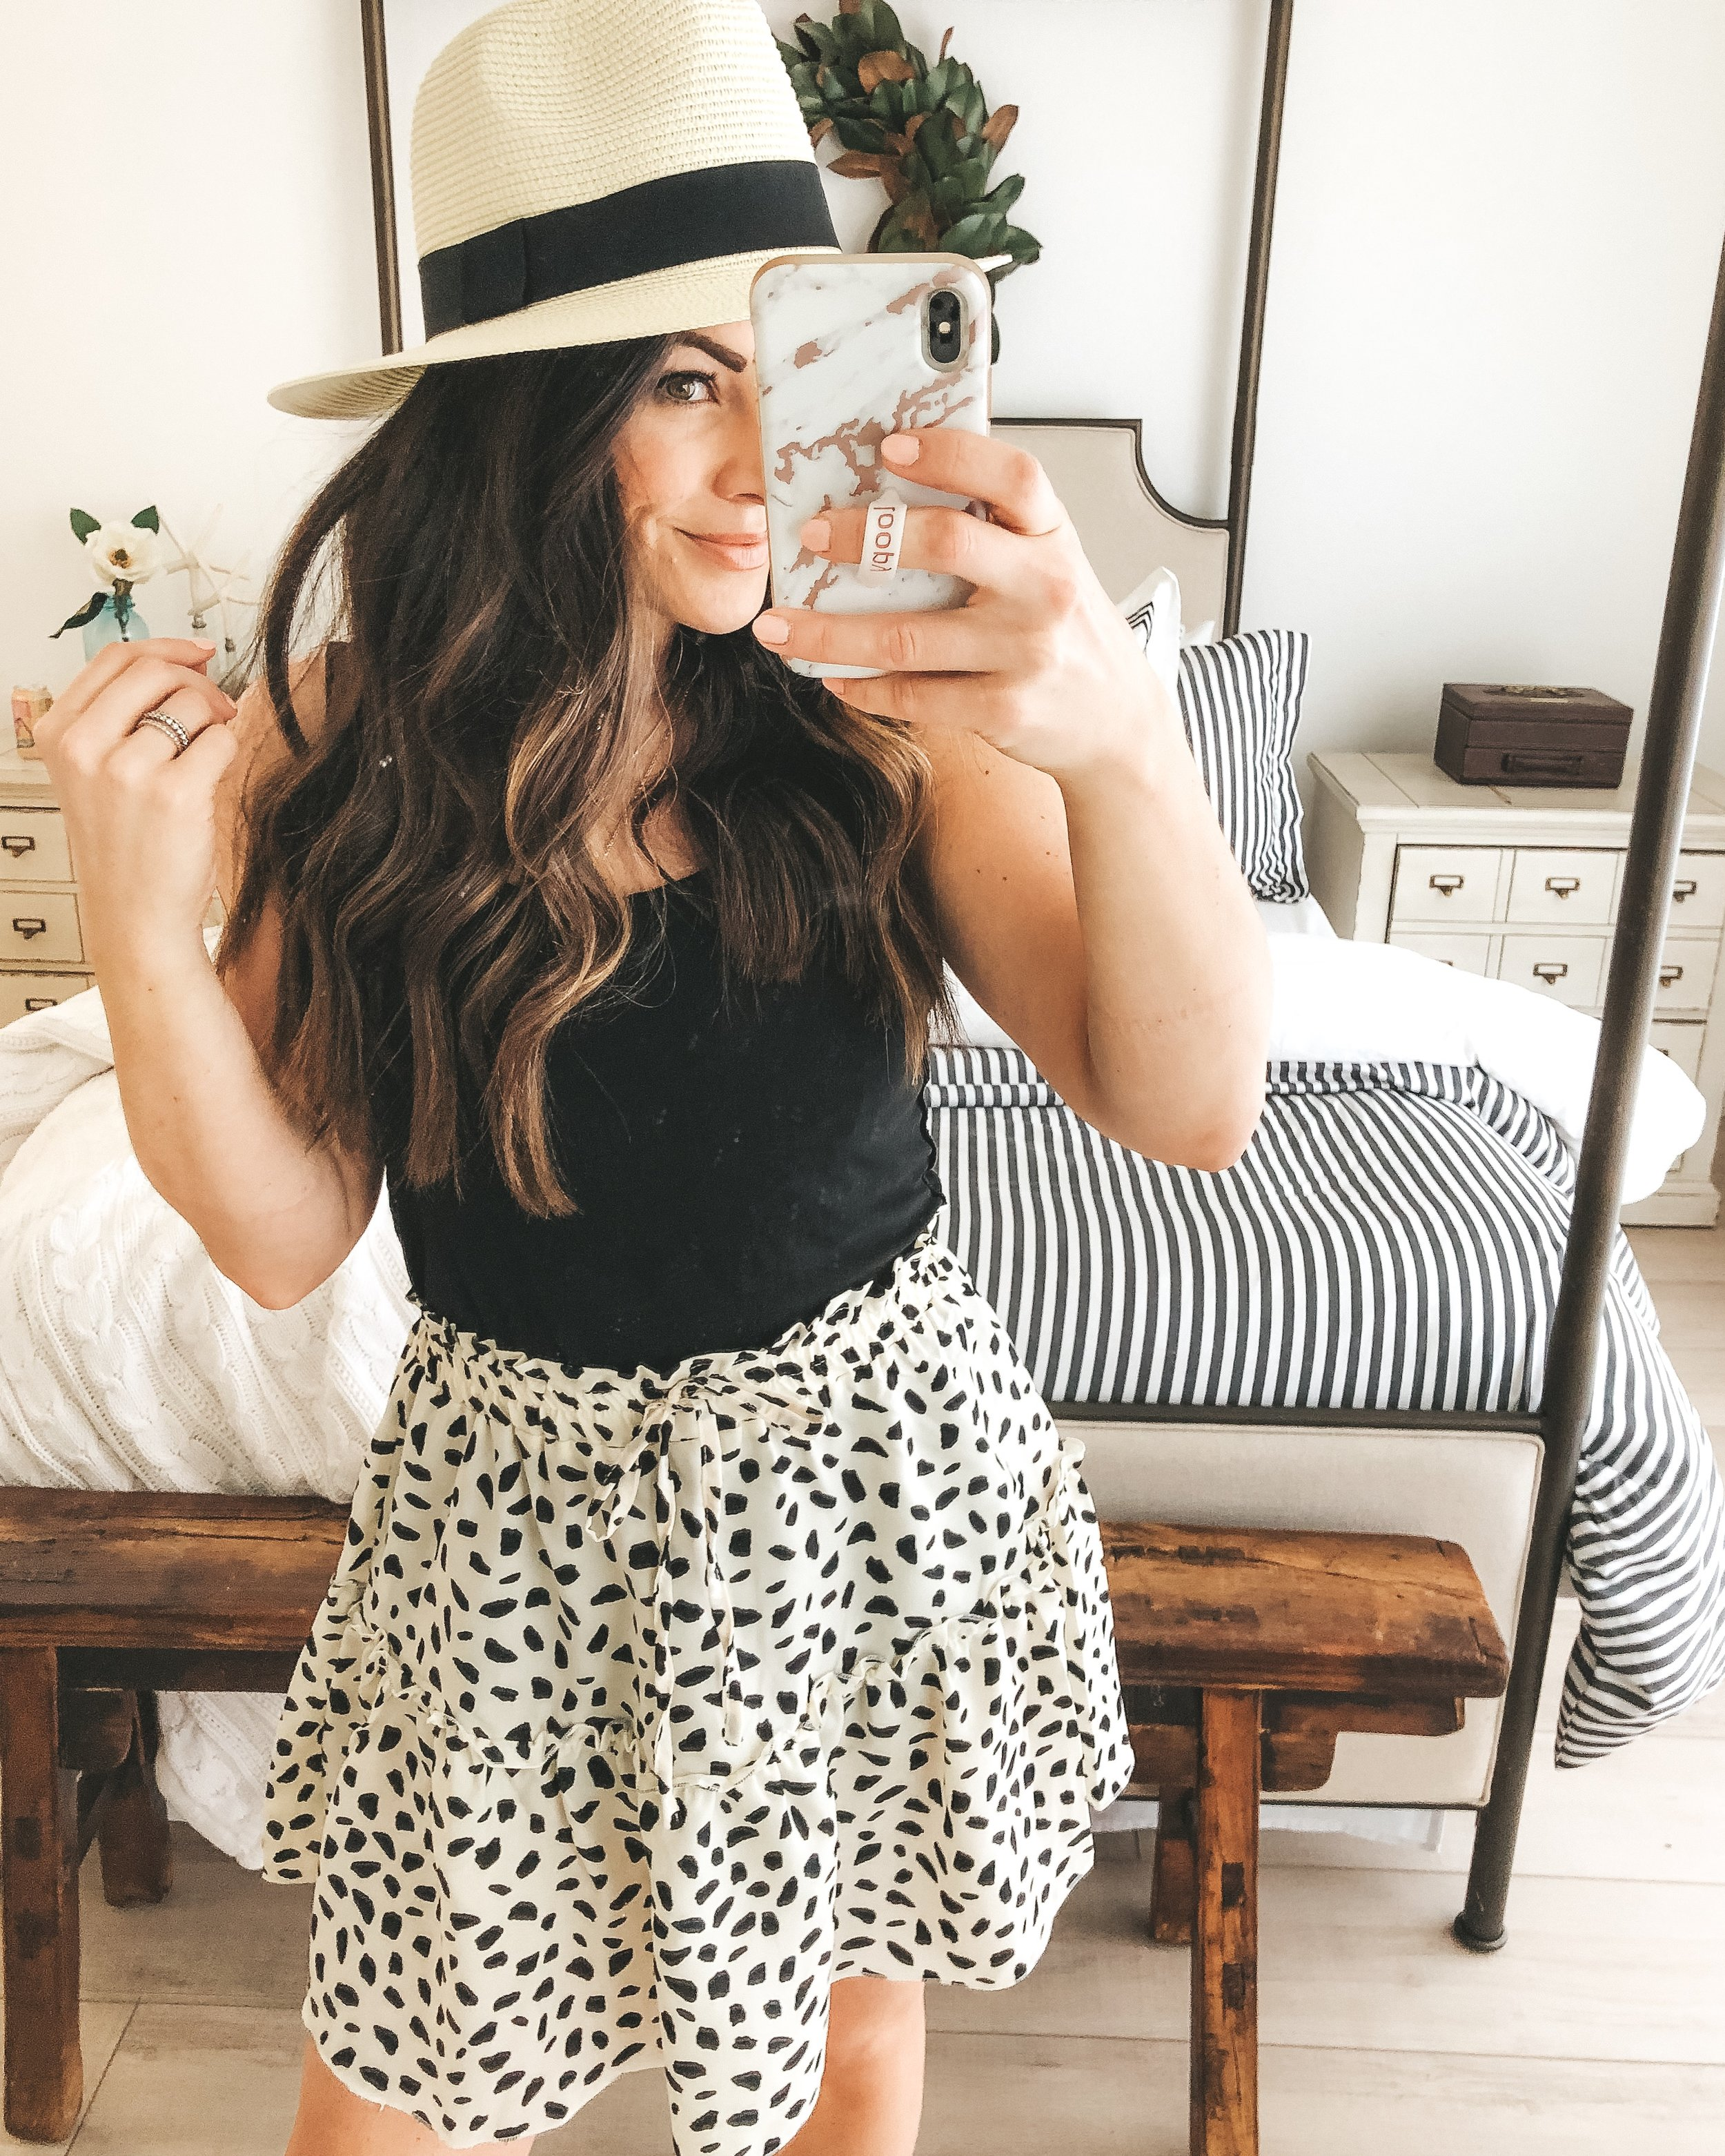 Amazon fashion finds for summer.  10 under $35 amazon women's clothing pieces.  Leopard printed black and white skirt with ruffle detal.  Cute summer skirt outfit.